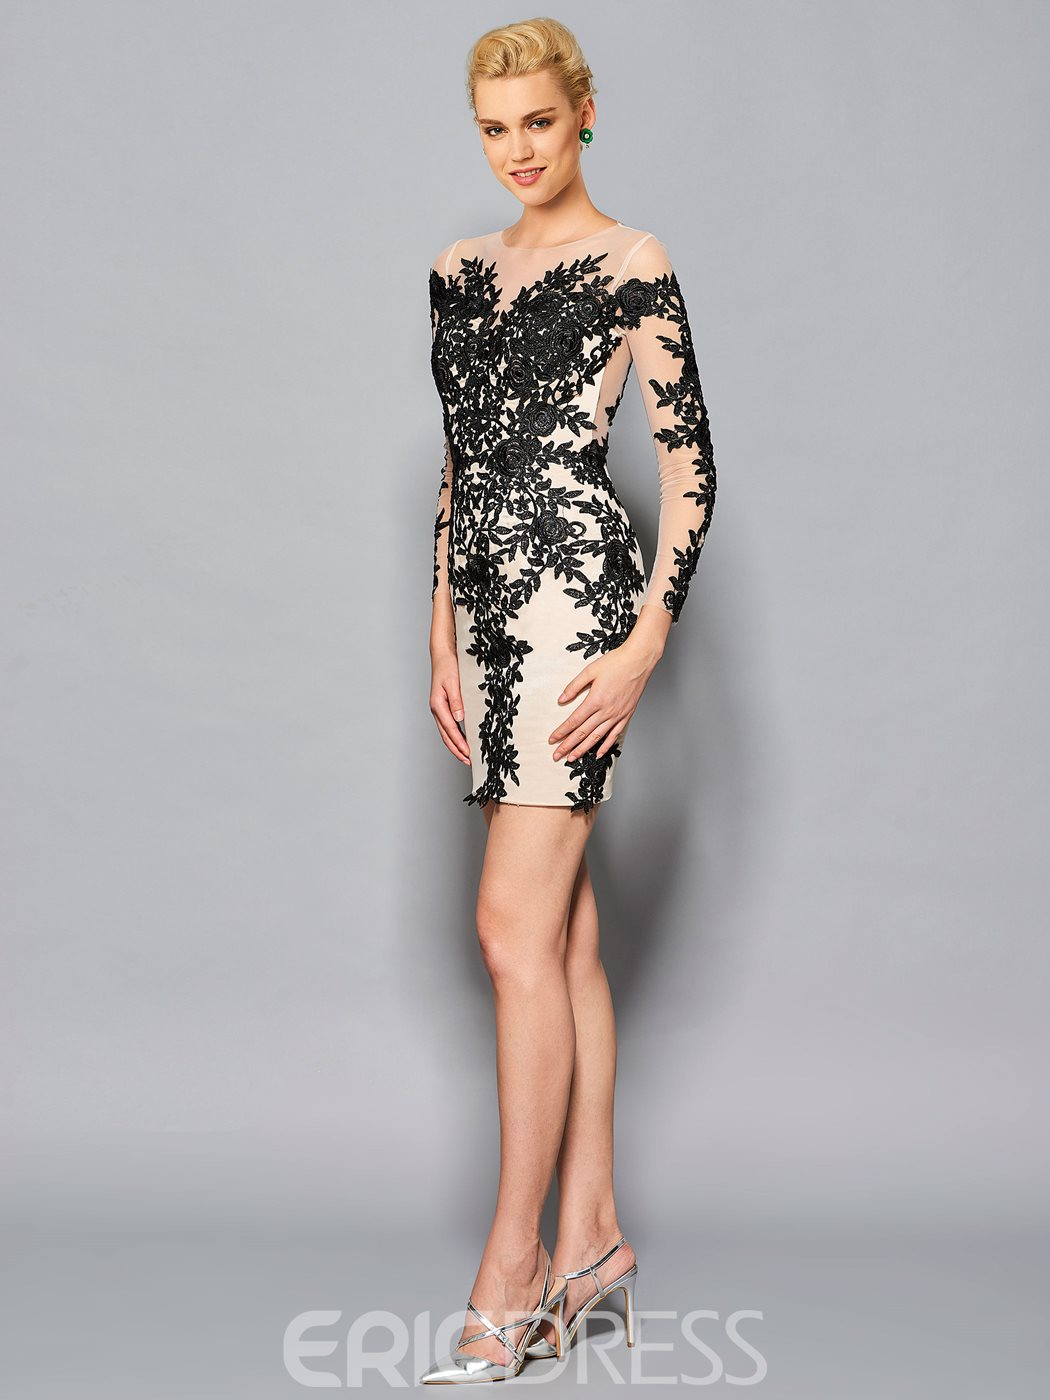 Ericdress Sheath Round Neck Long Sleeves Appliques Lace Knee-Length Cocktail Dress